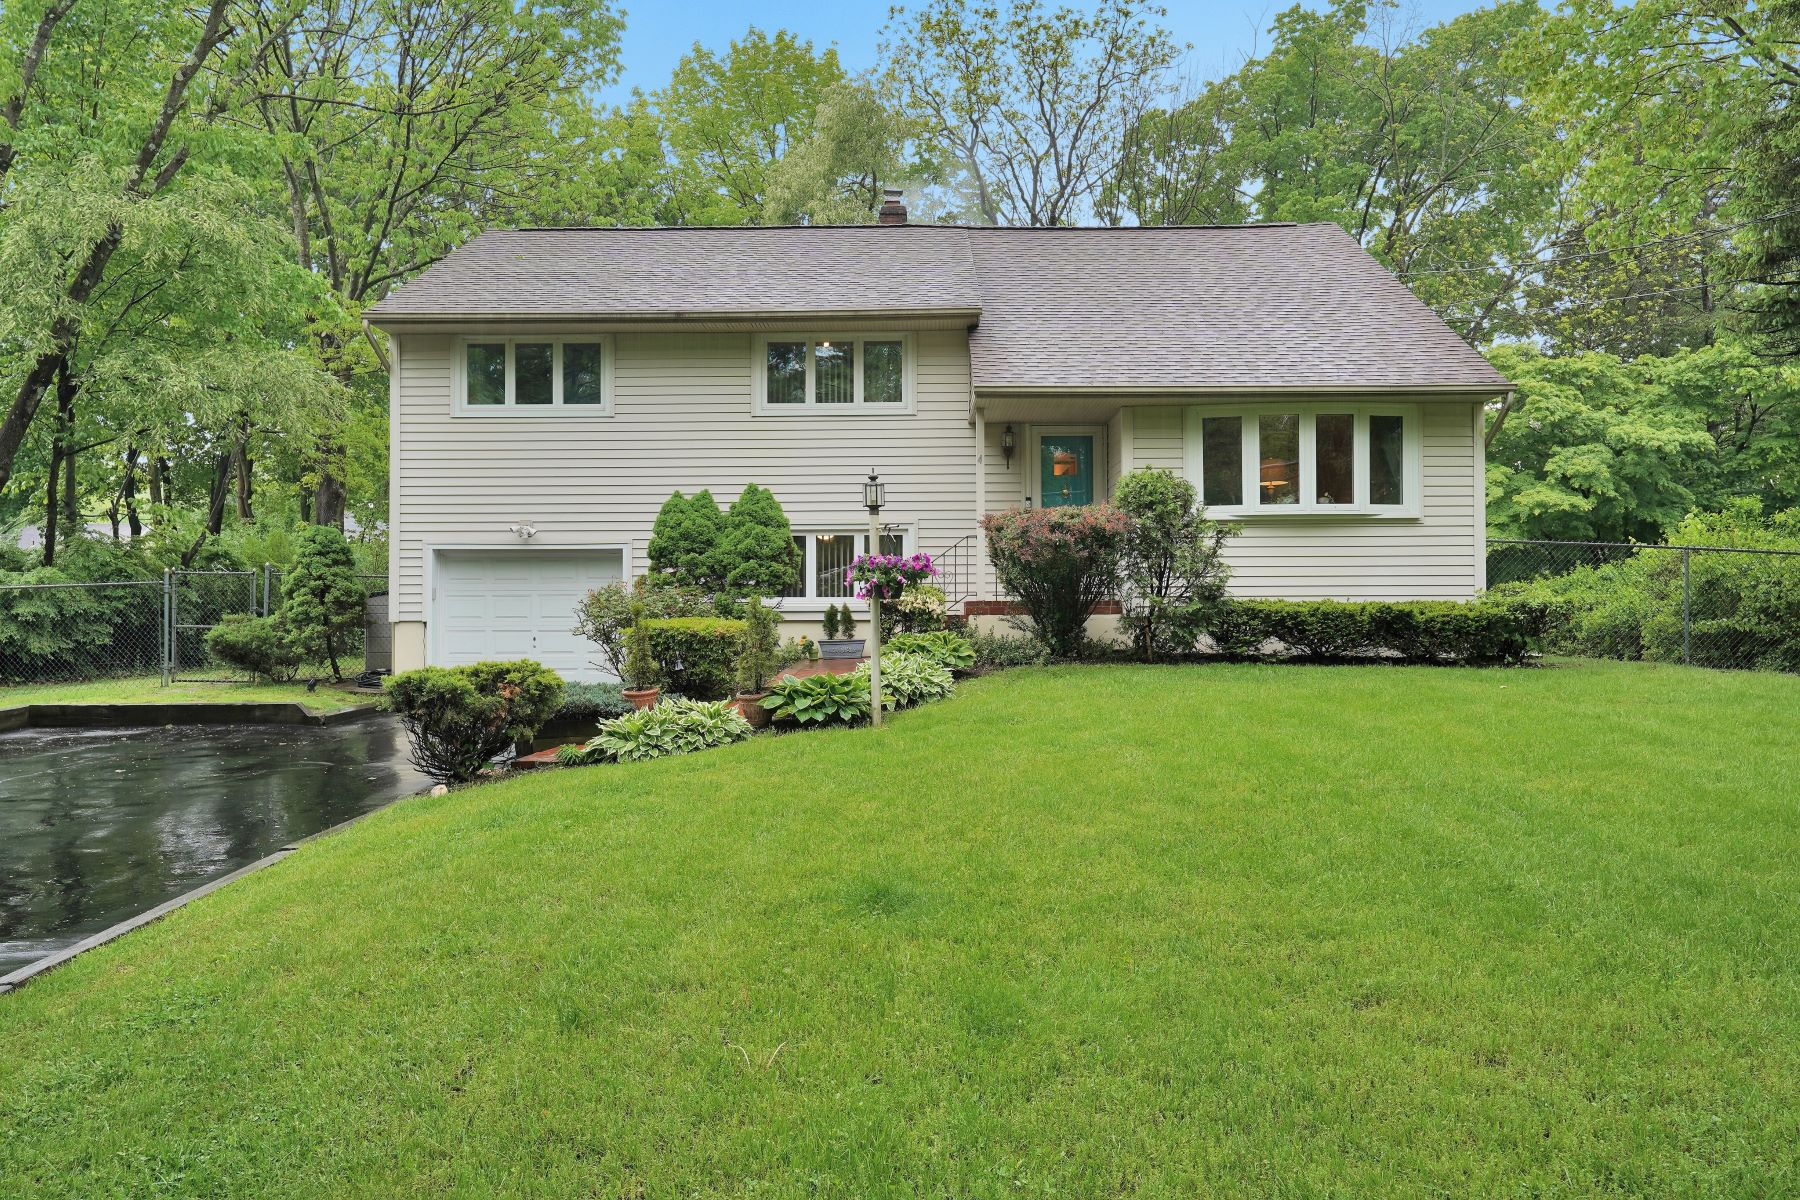 Single Family Homes for Sale at Beautifully Maintained 4 Maxine Drive Morris Township, New Jersey 07960 United States